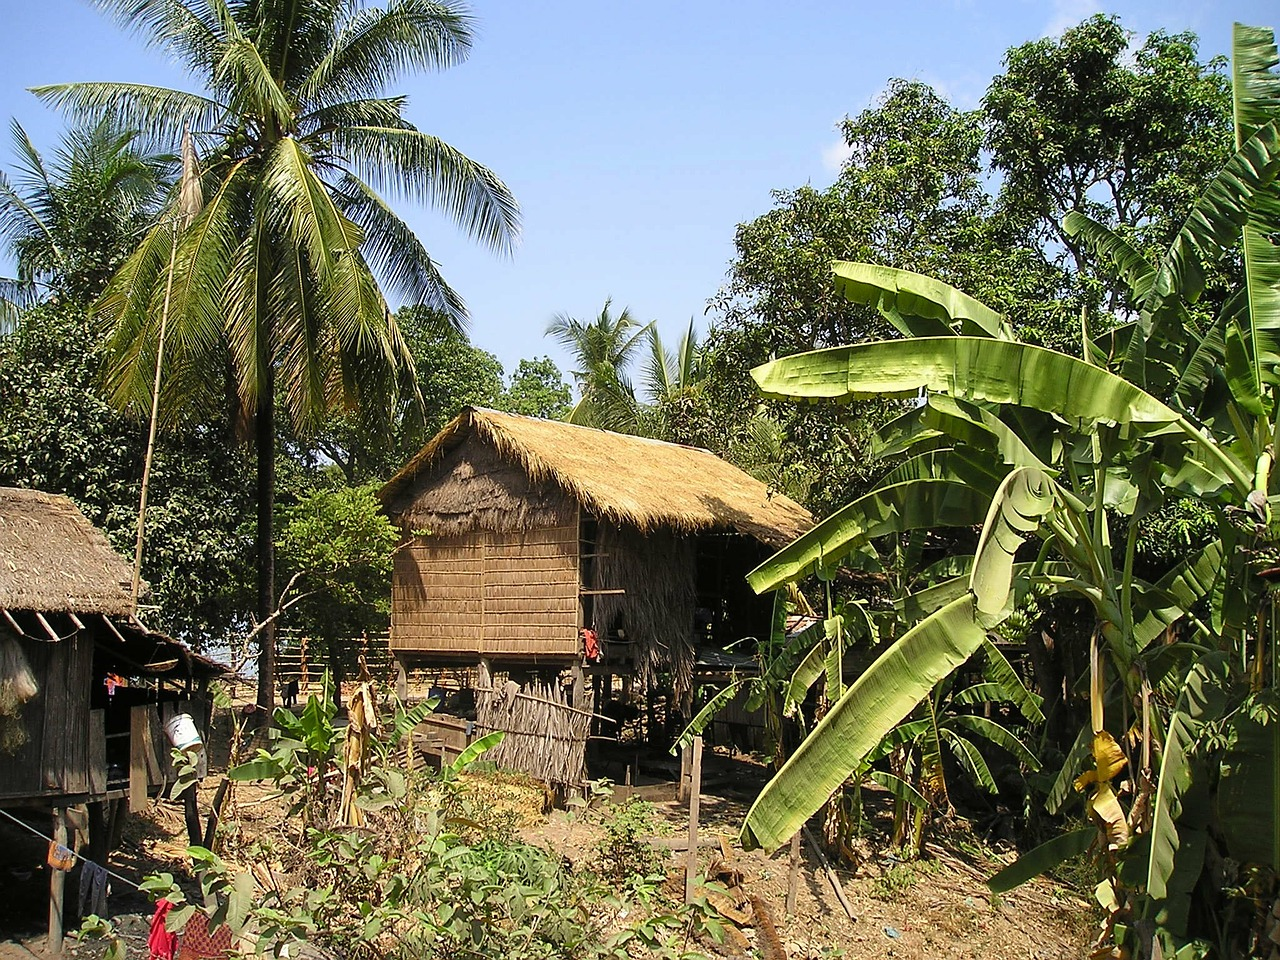 cambodia hut palm trees free picture